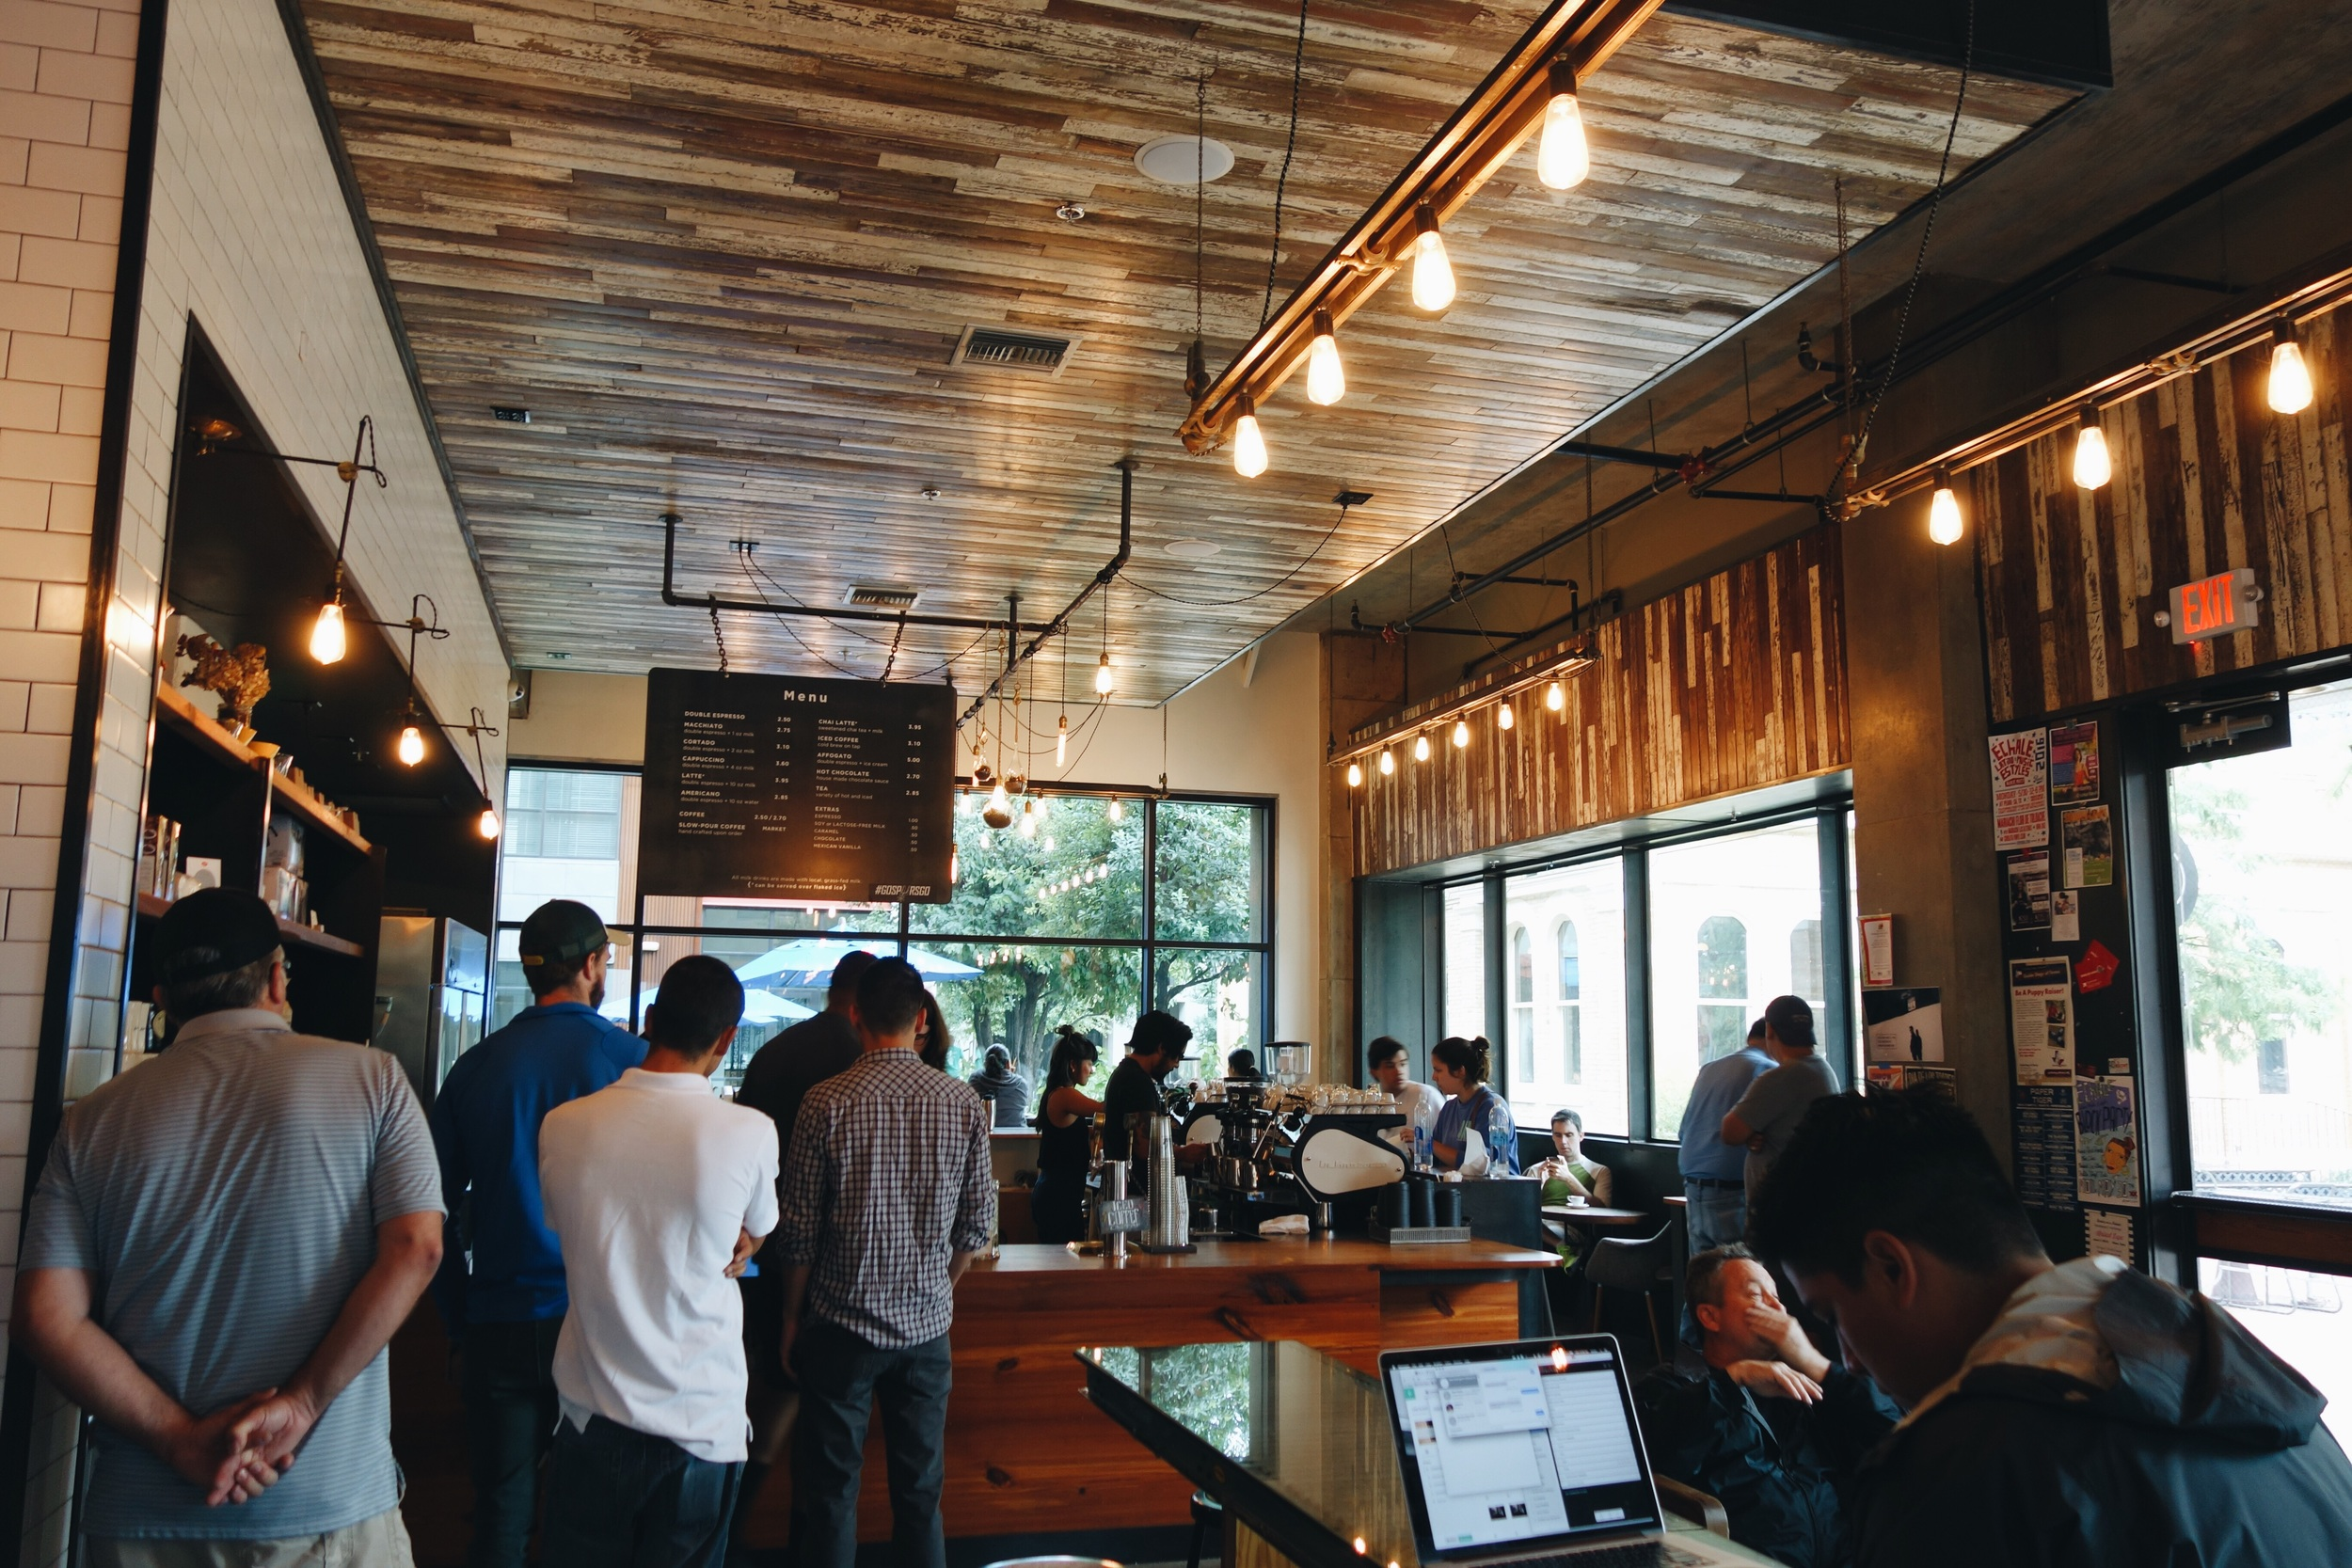 Great layout, great vibes and good coffee.